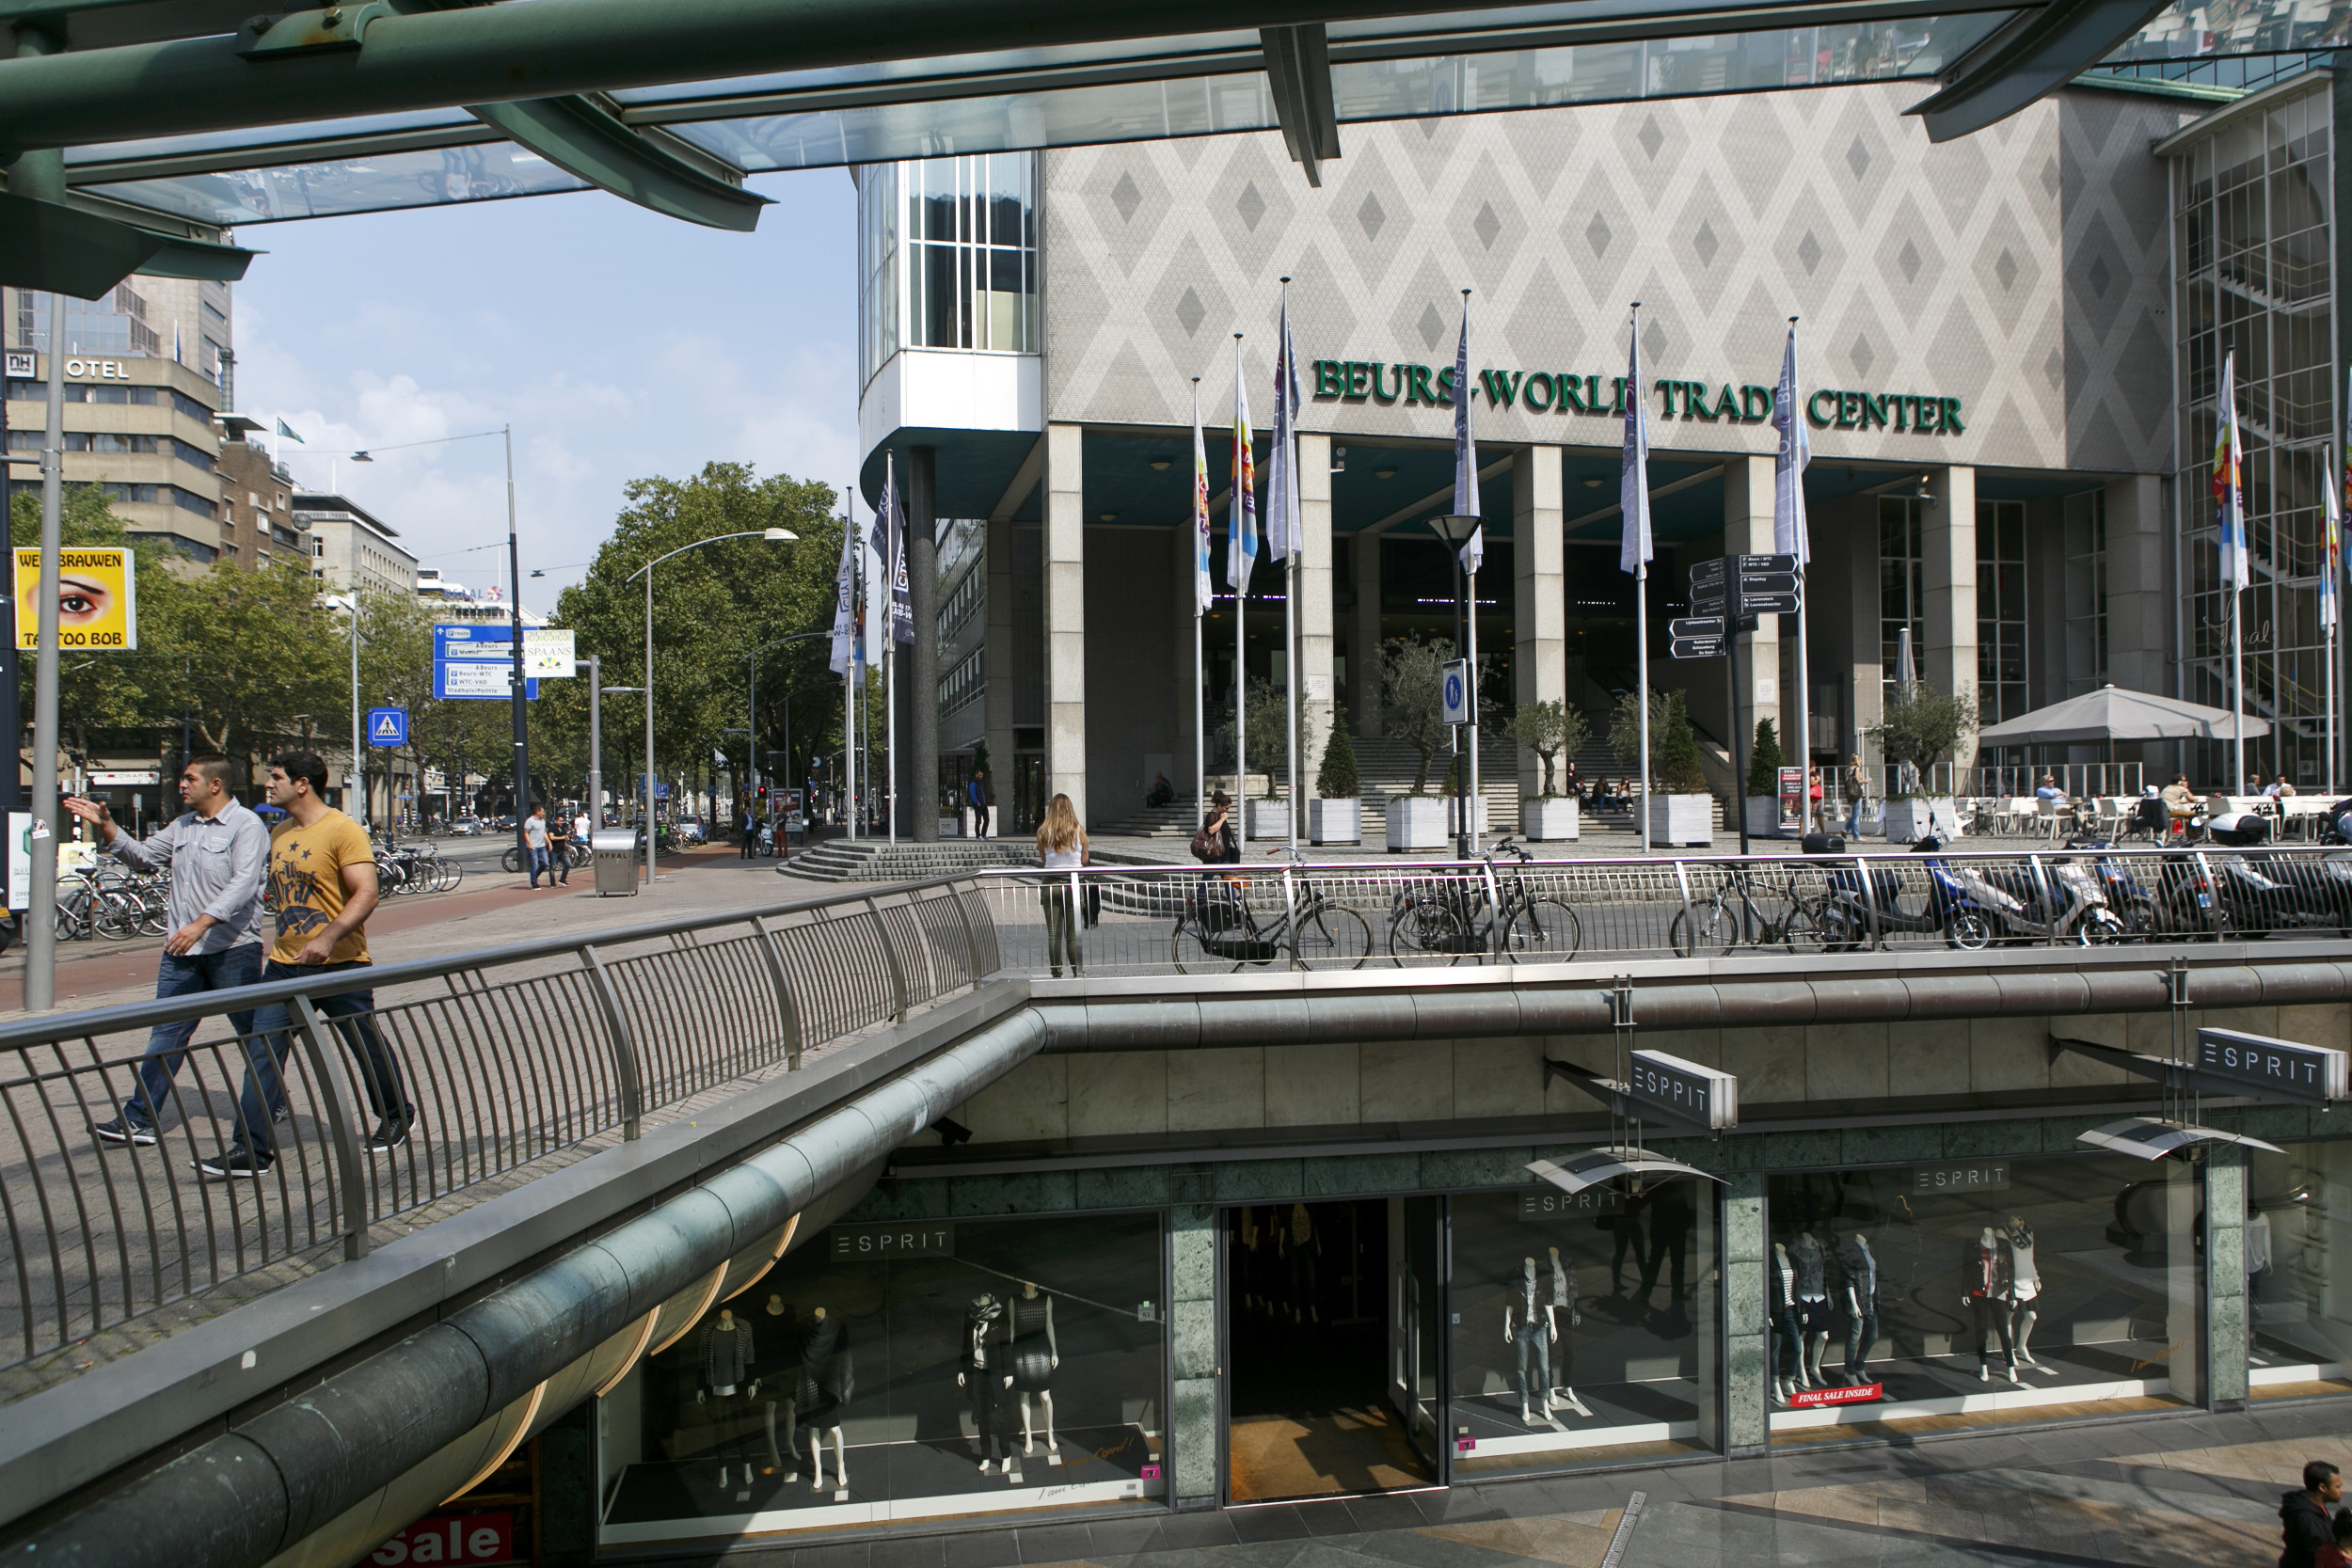 Rotterdam Beurs World Trade Center Coolsingel Koopgoot